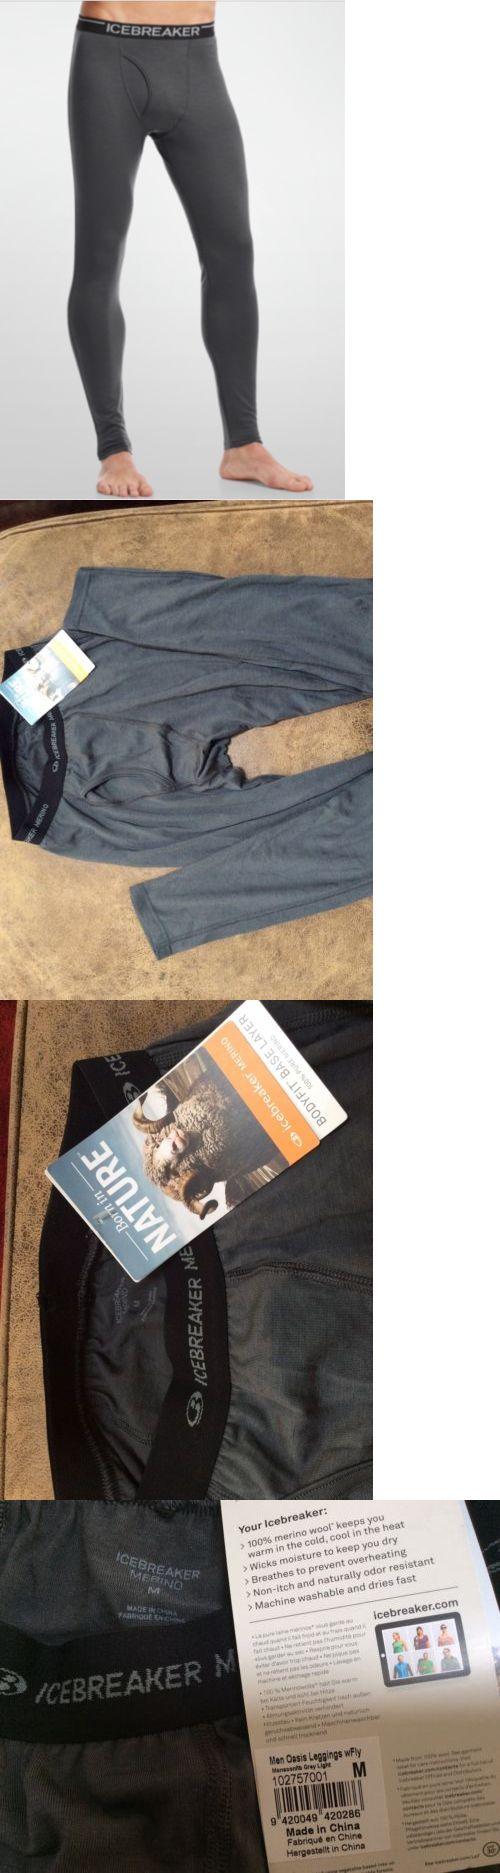 Base Layers 62171: Nwt, Men S Icebreaker Merino Wool, Oasis Leggings With Fly, Sz Medium, Grey -> BUY IT NOW ONLY: $45.99 on eBay!